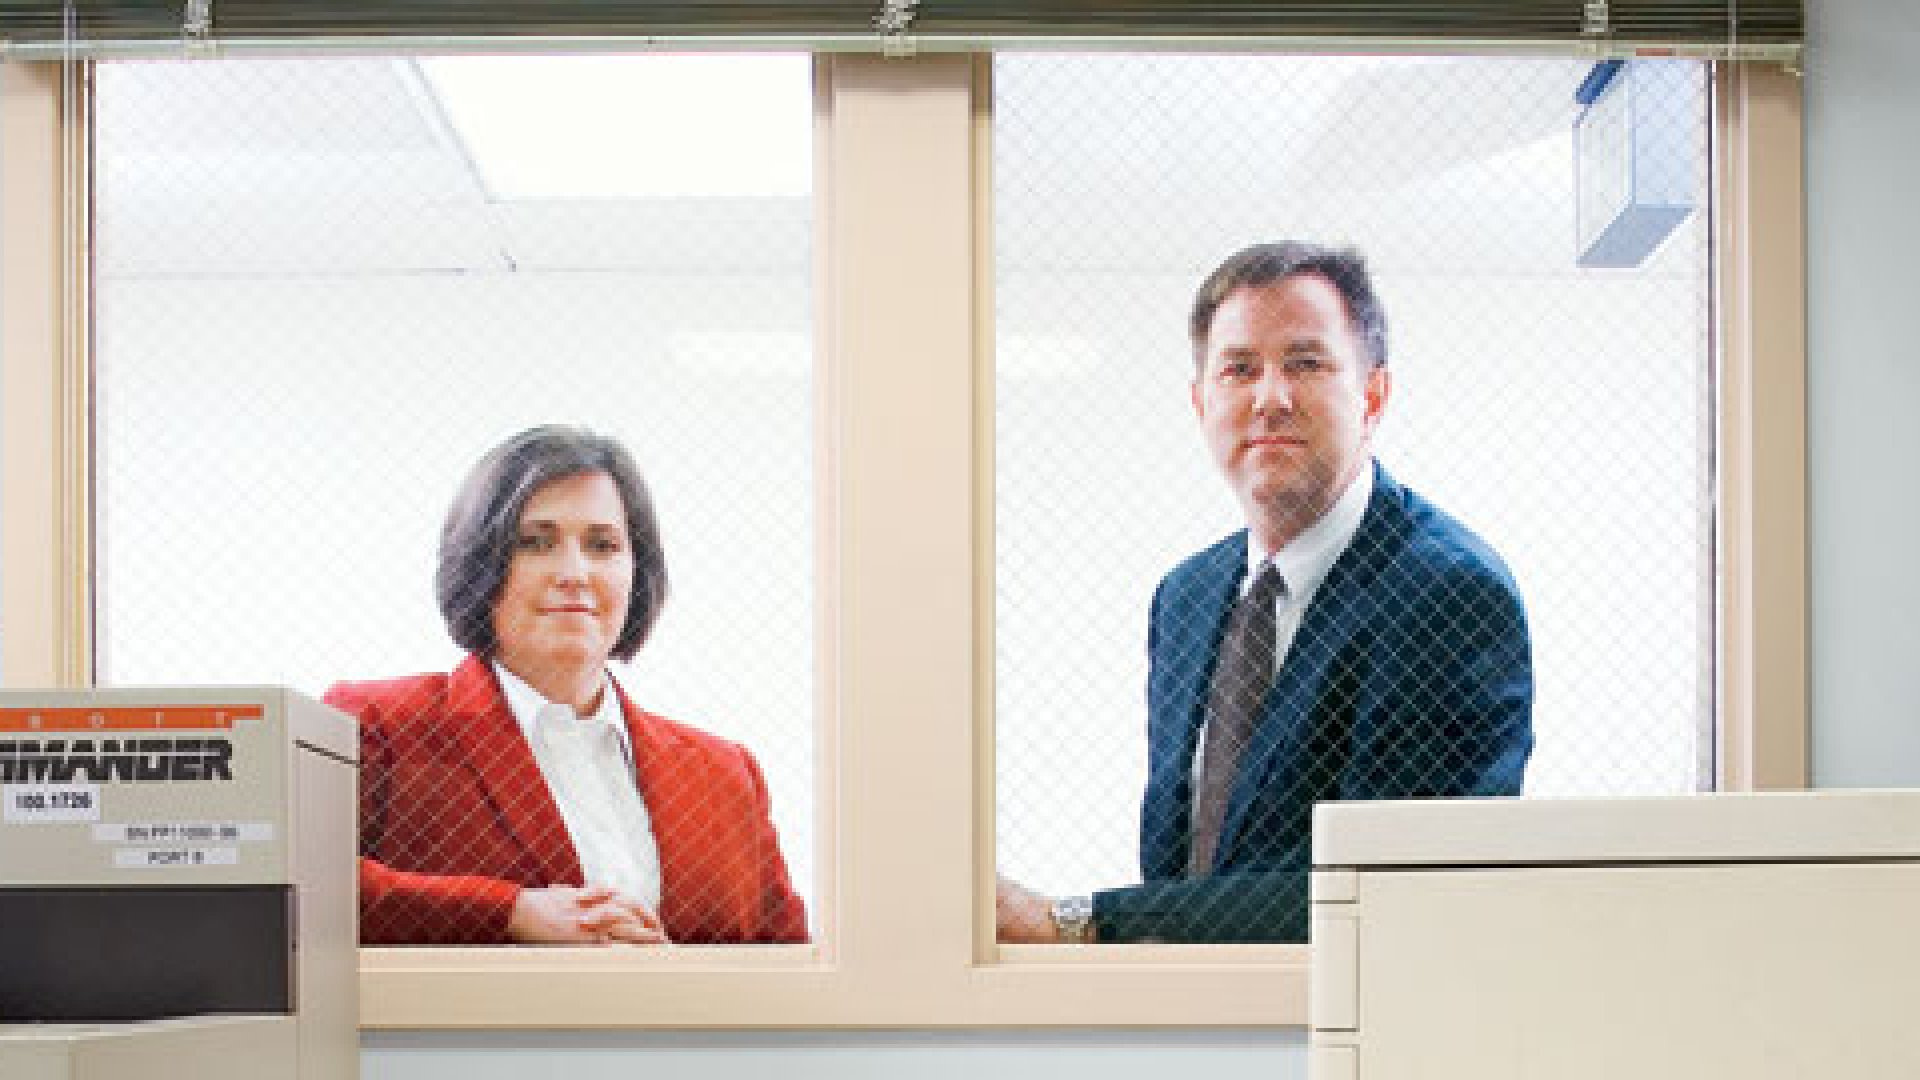 <strong>THE CURE?</strong> Kerrie Paige and Jaret Hauge's software helped the American Red Cross turn around blood-test results faster -- and more cheaply. Can it do the same for the rest of the health care industry?